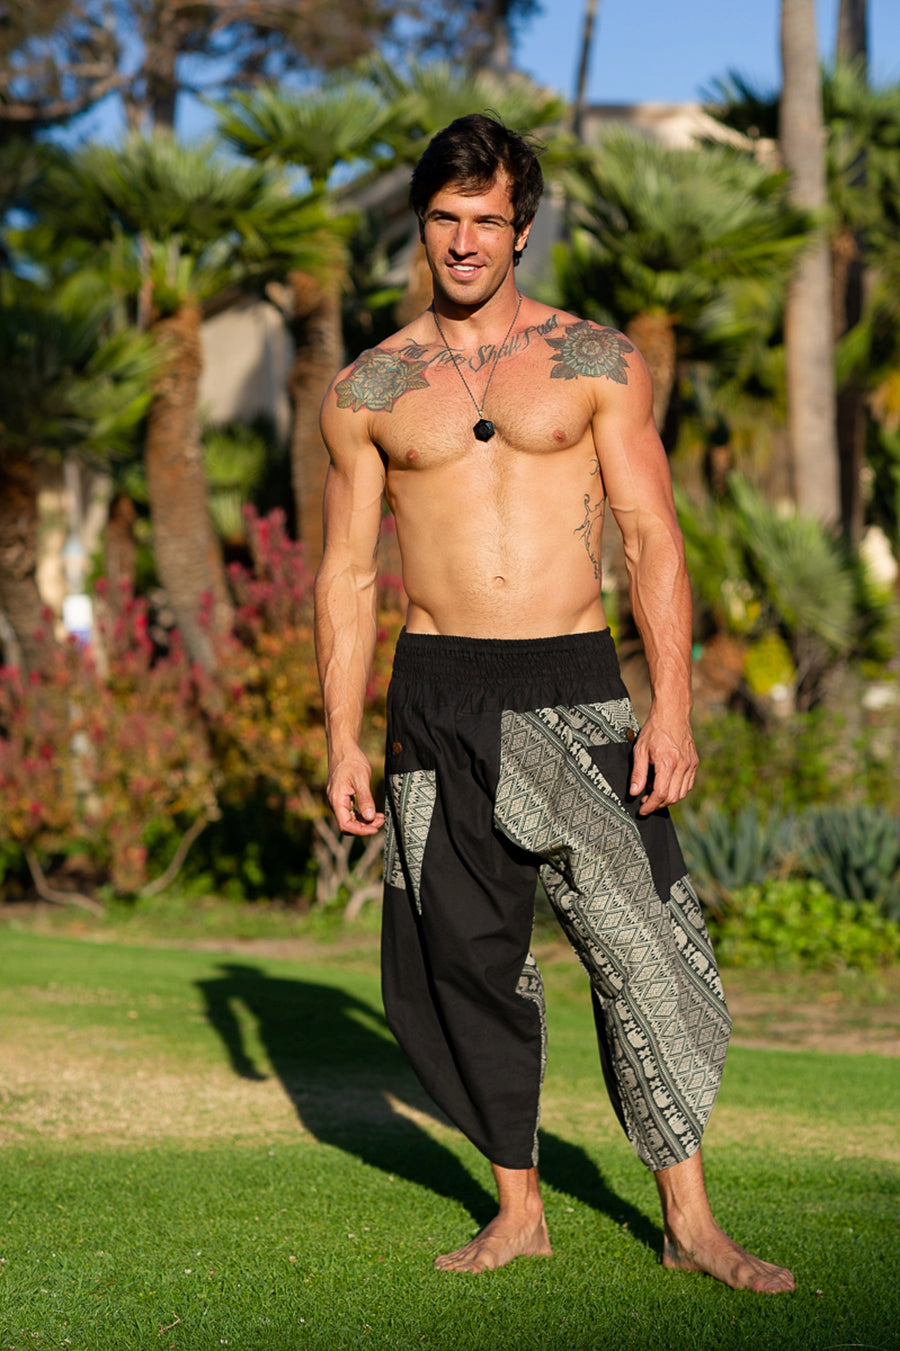 Samurai Elastic Shorts in Black & White-The High Thai-The High Thai-Yoga Pants-Harem Pants-Hippie Clothing-San Diego